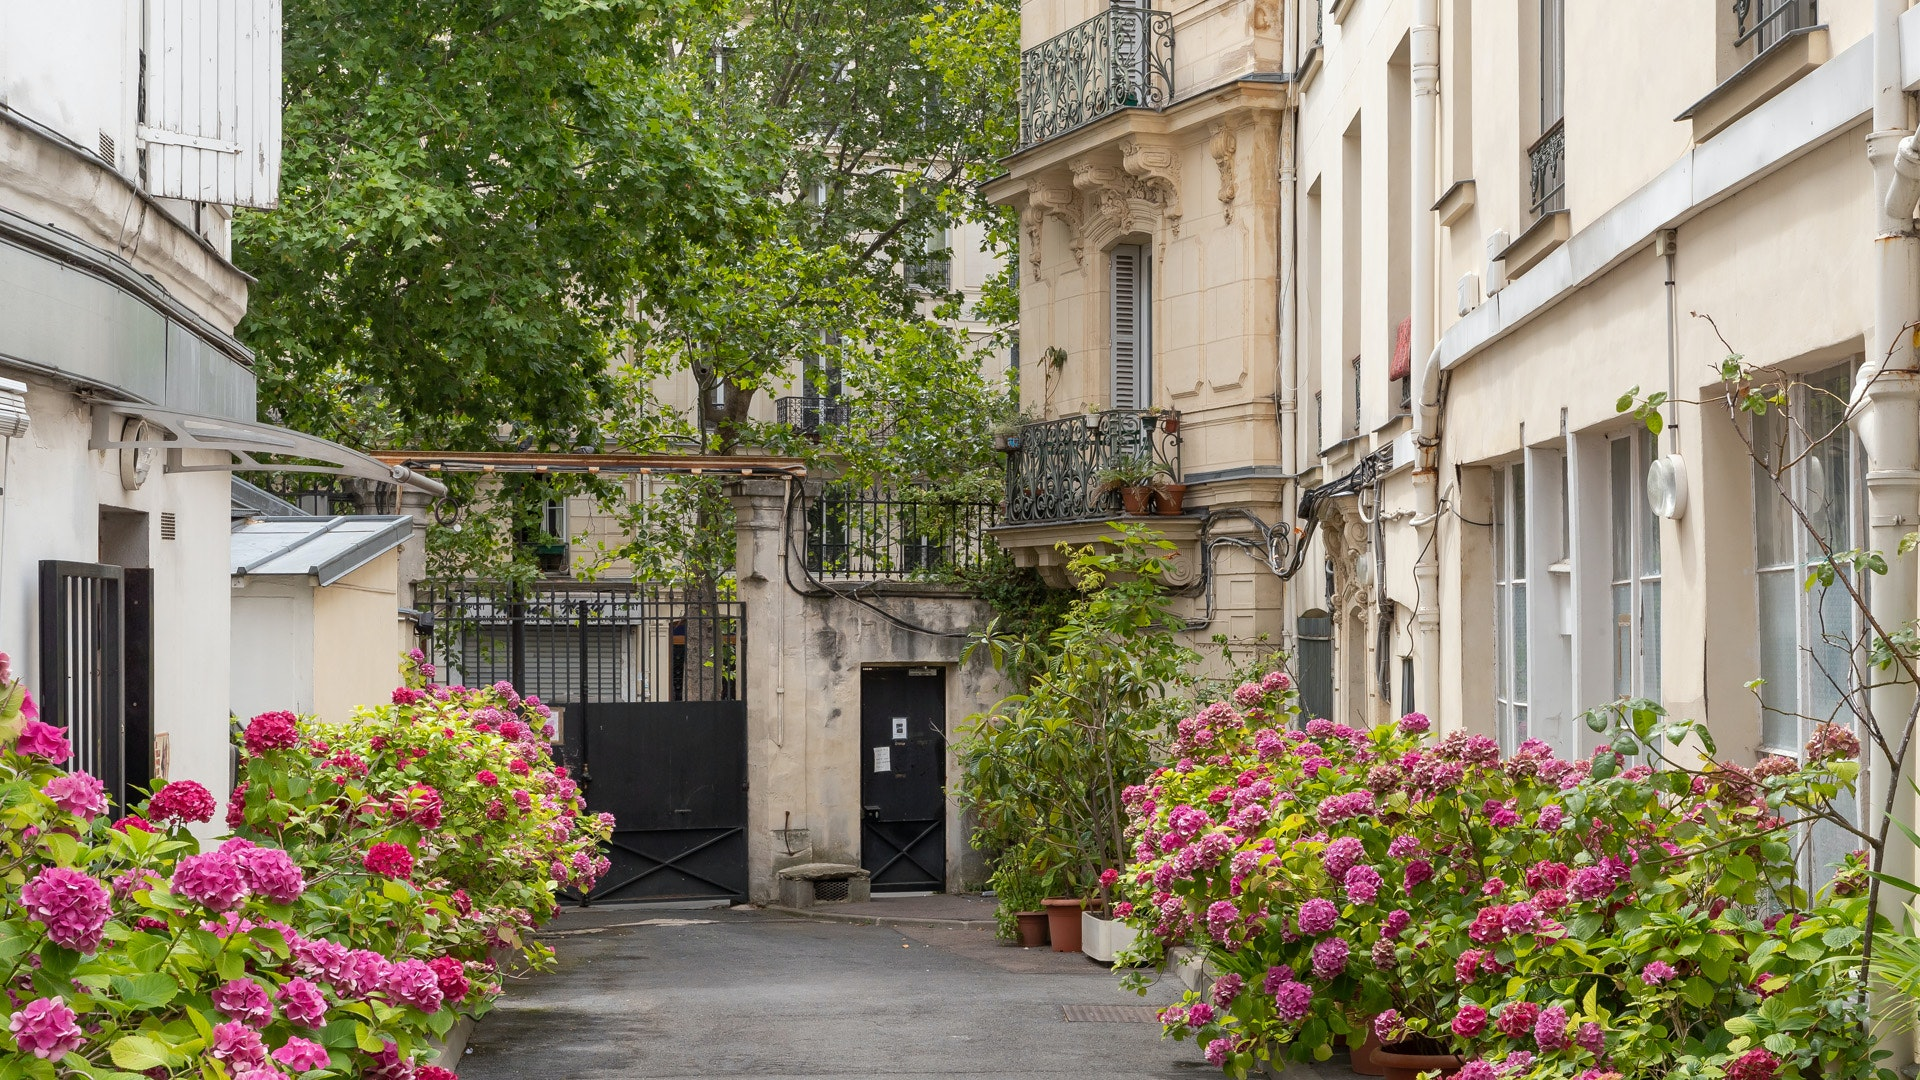 Ivanhoé Cambridge fait l'acquisition d'un ensemble immobilier mixte à redévelopper, aux portes du Marais à Paris, 11ème arr.